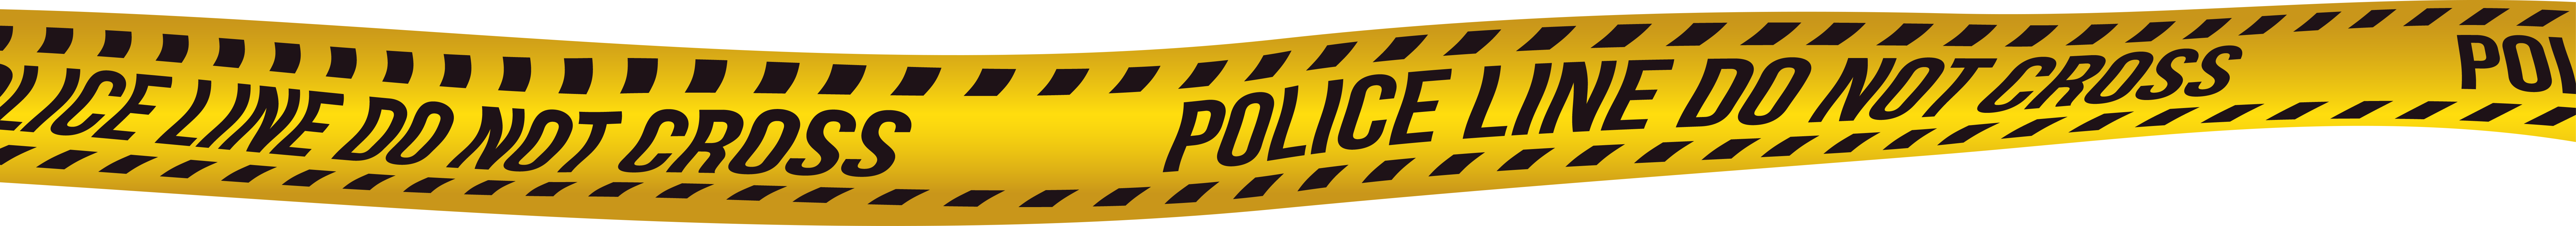 Police line do not cross png. Clip art image gallery